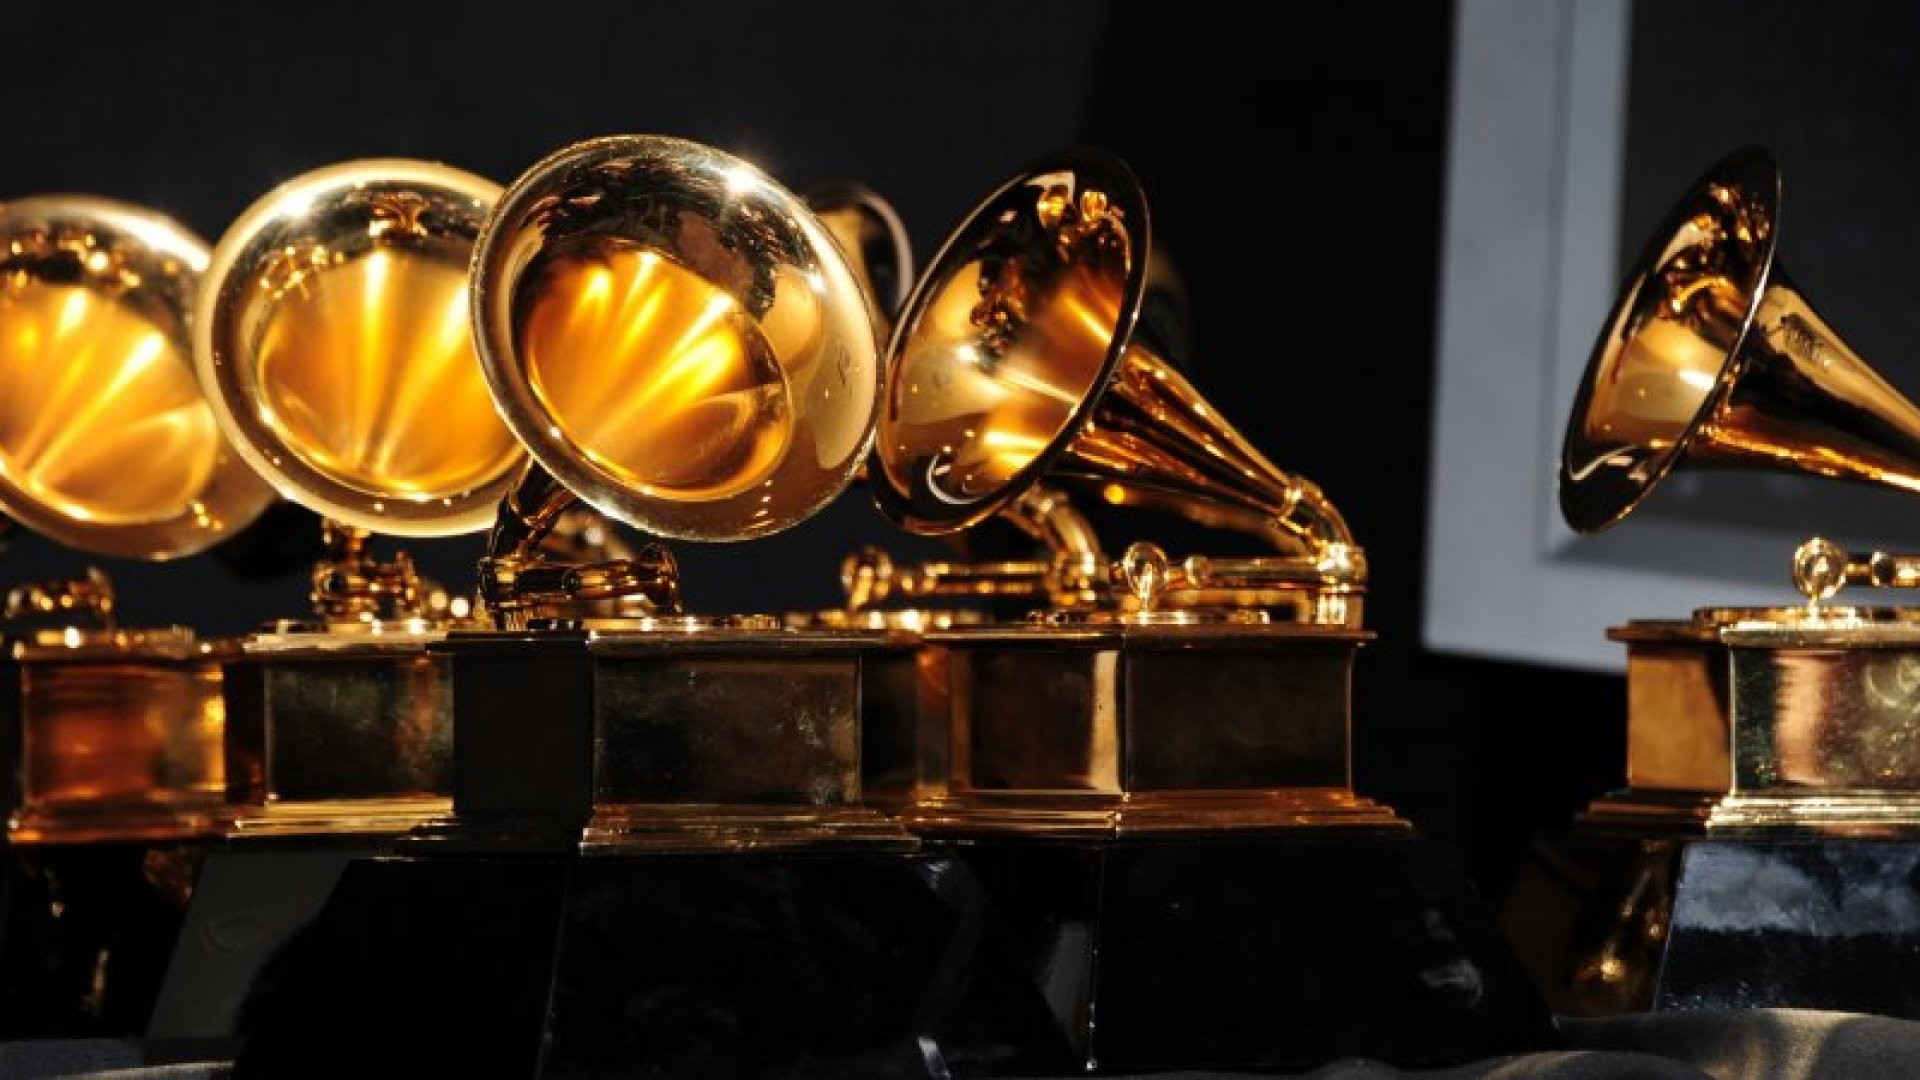 Shazam vs. Spotify: Which Startup Can Predict the Grammys?